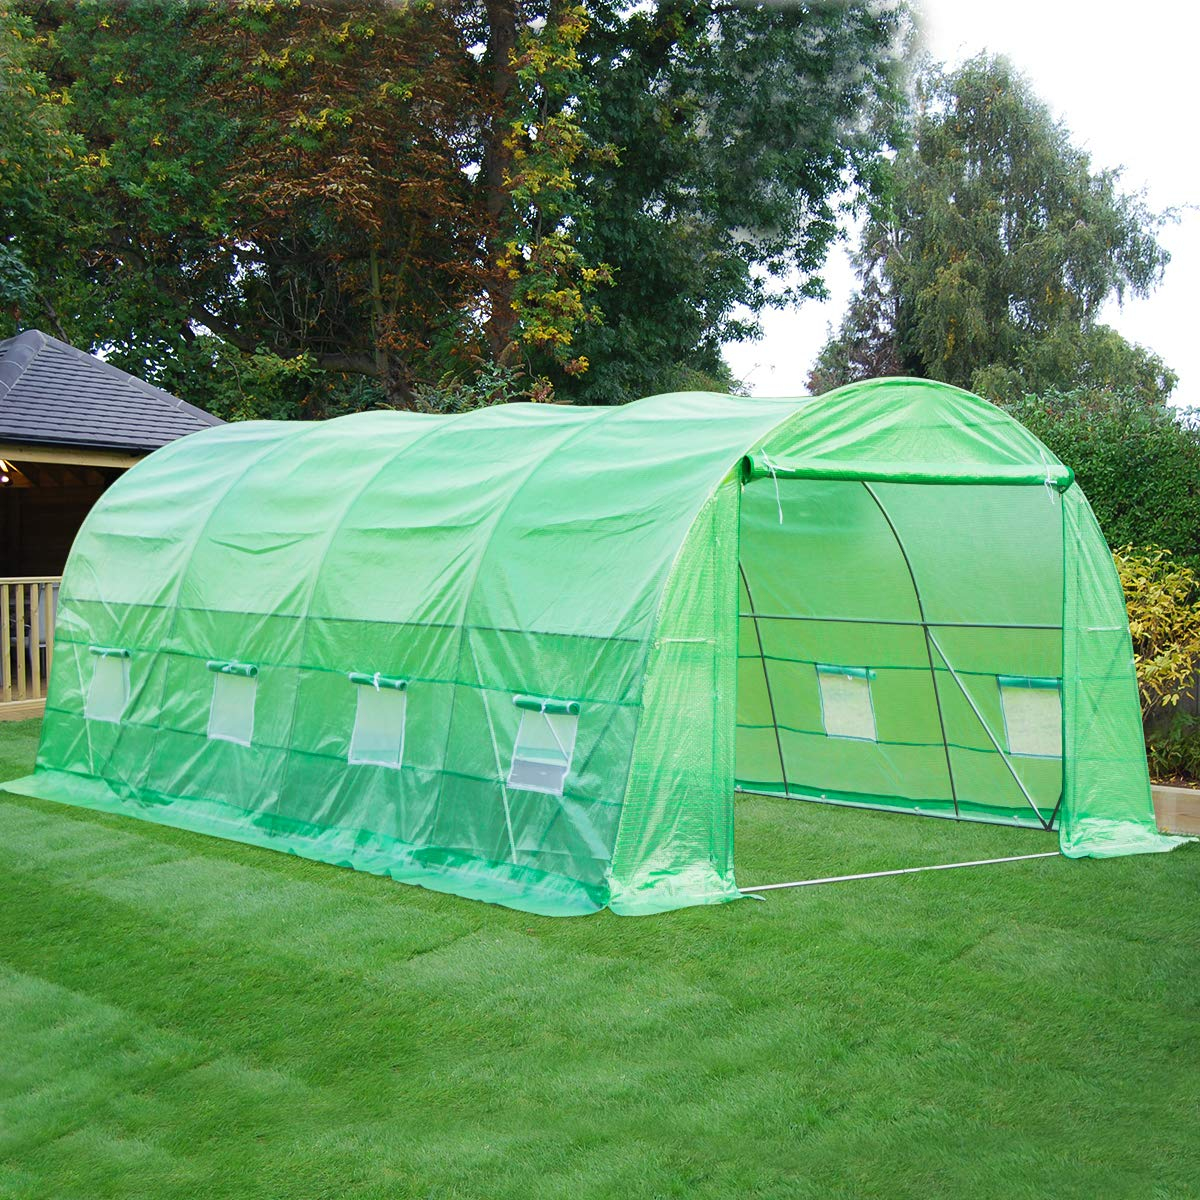 White Mellcom 20 x 10 x 7 Greenhouse Large Gardening Plant Hot House Portable Walking in Tunnel Tent